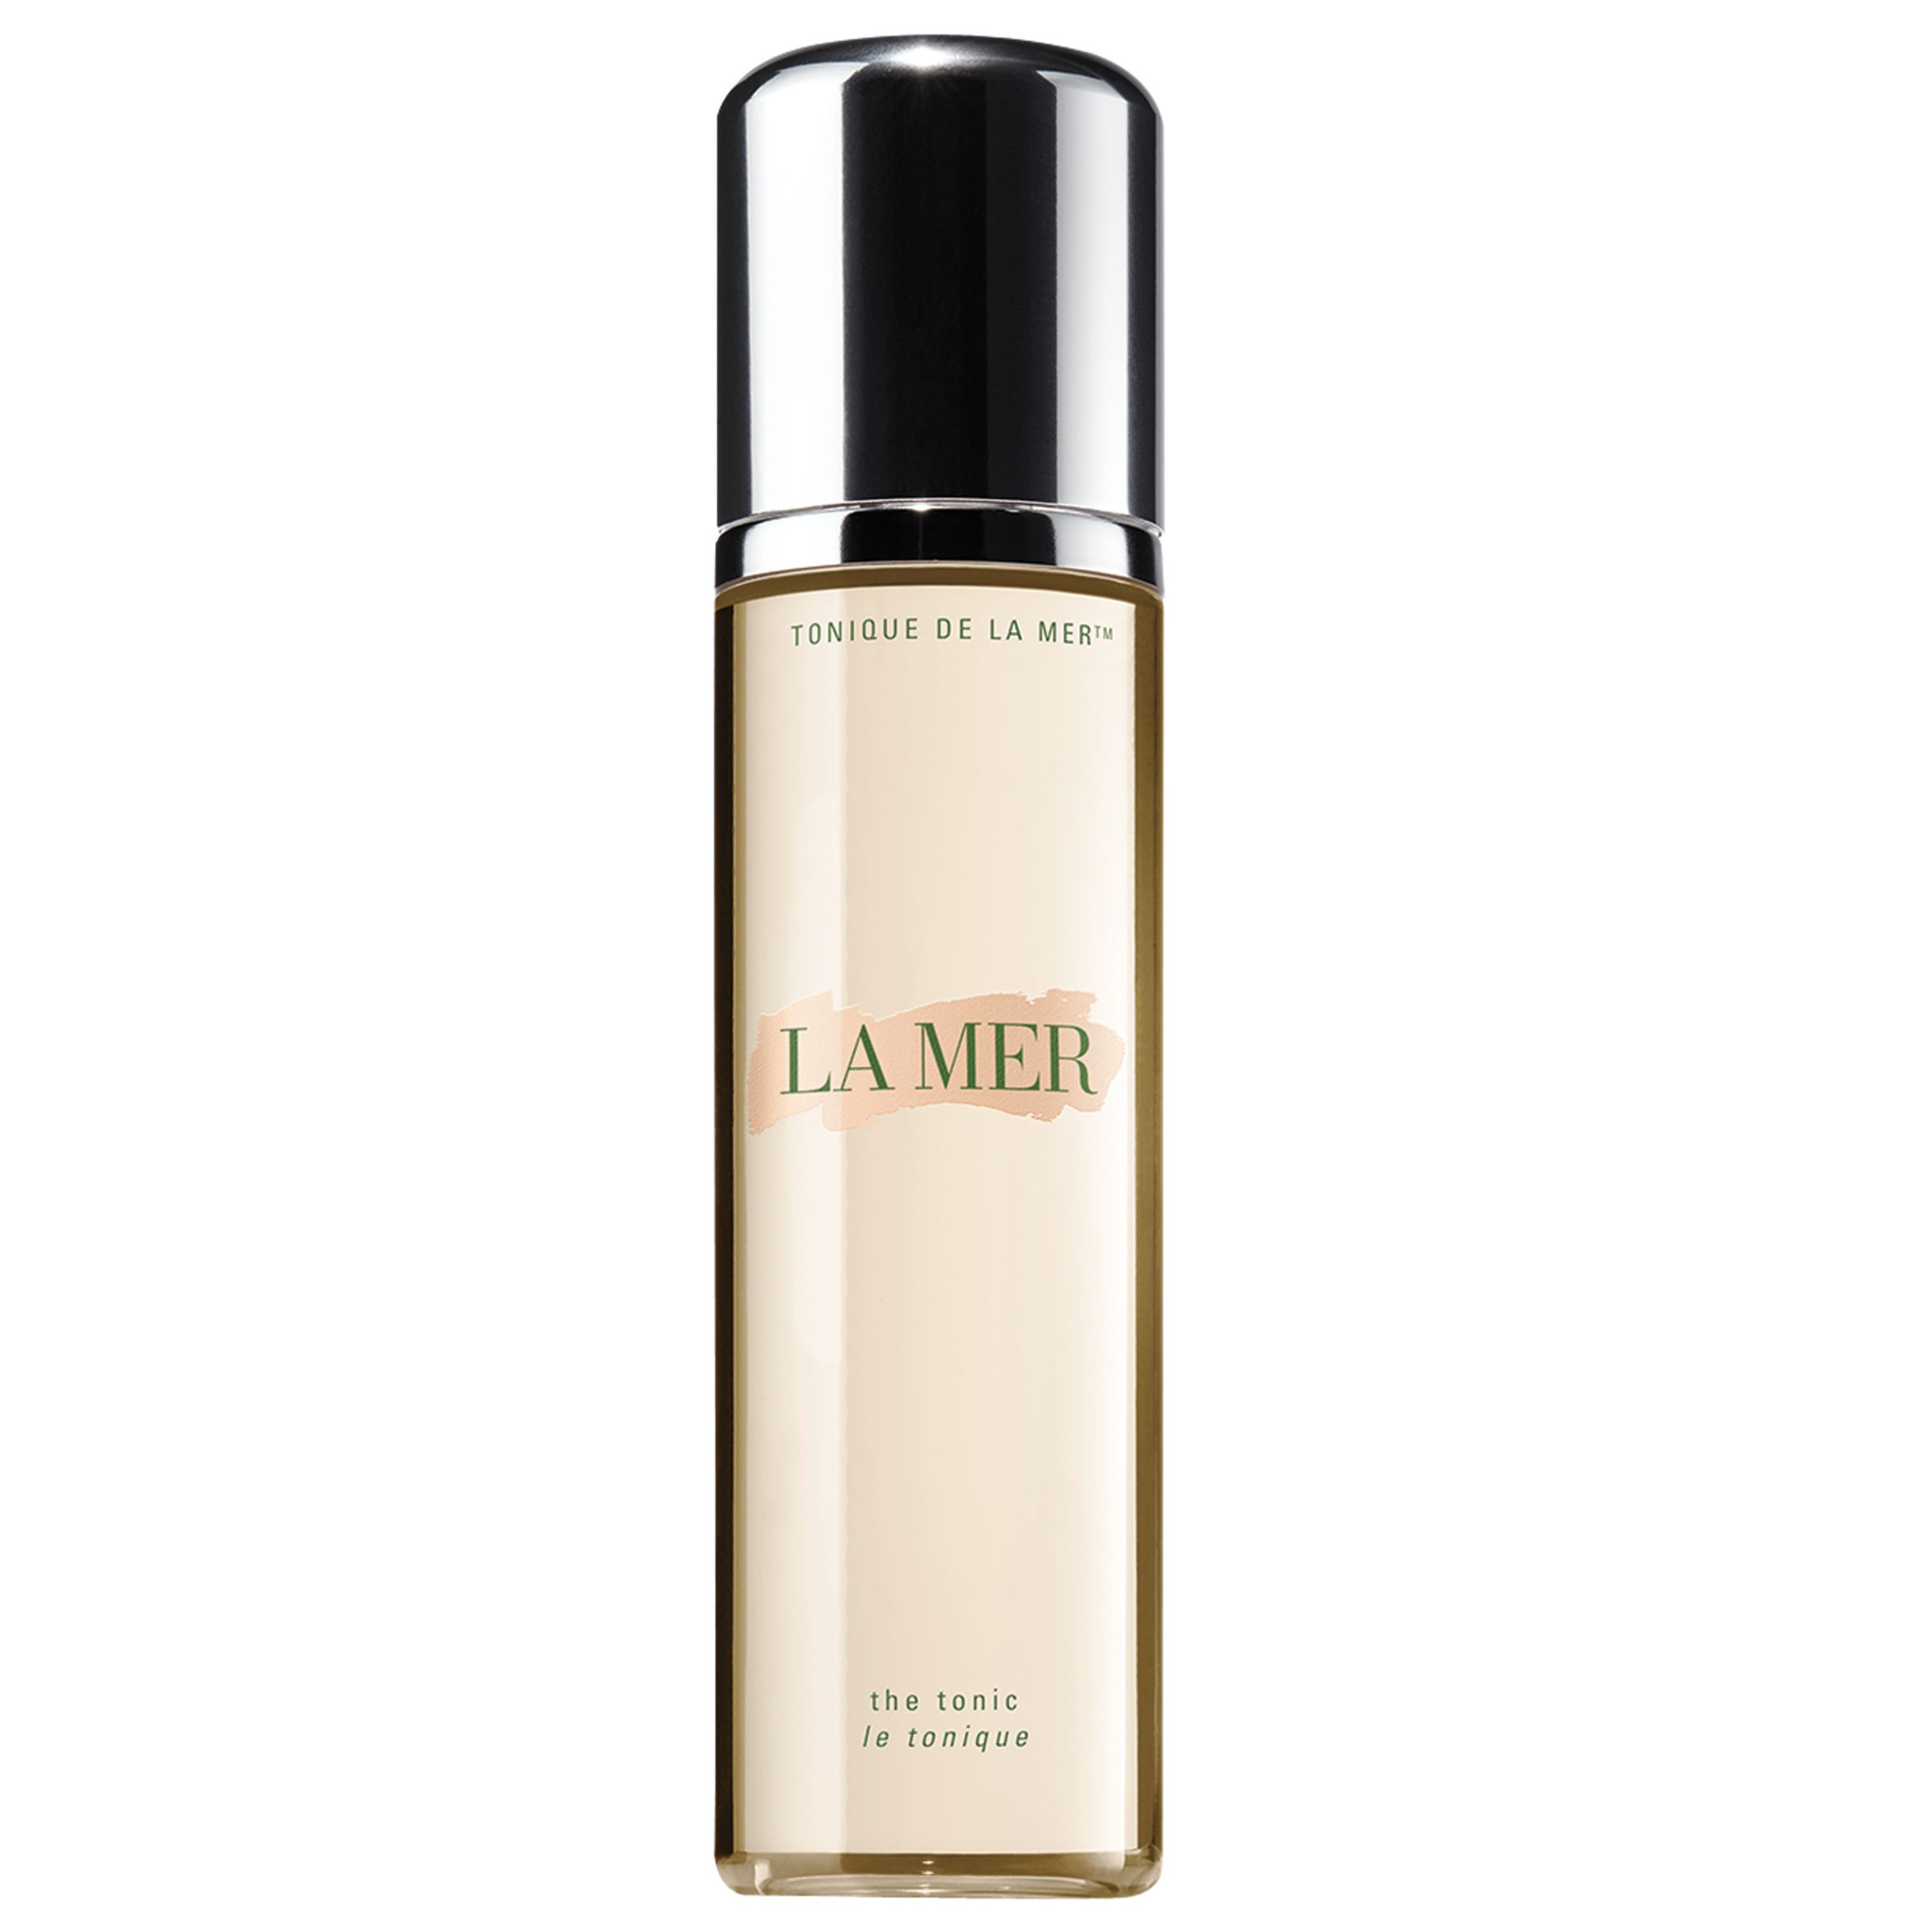 La Mer La Mer The Tonic, 200ml